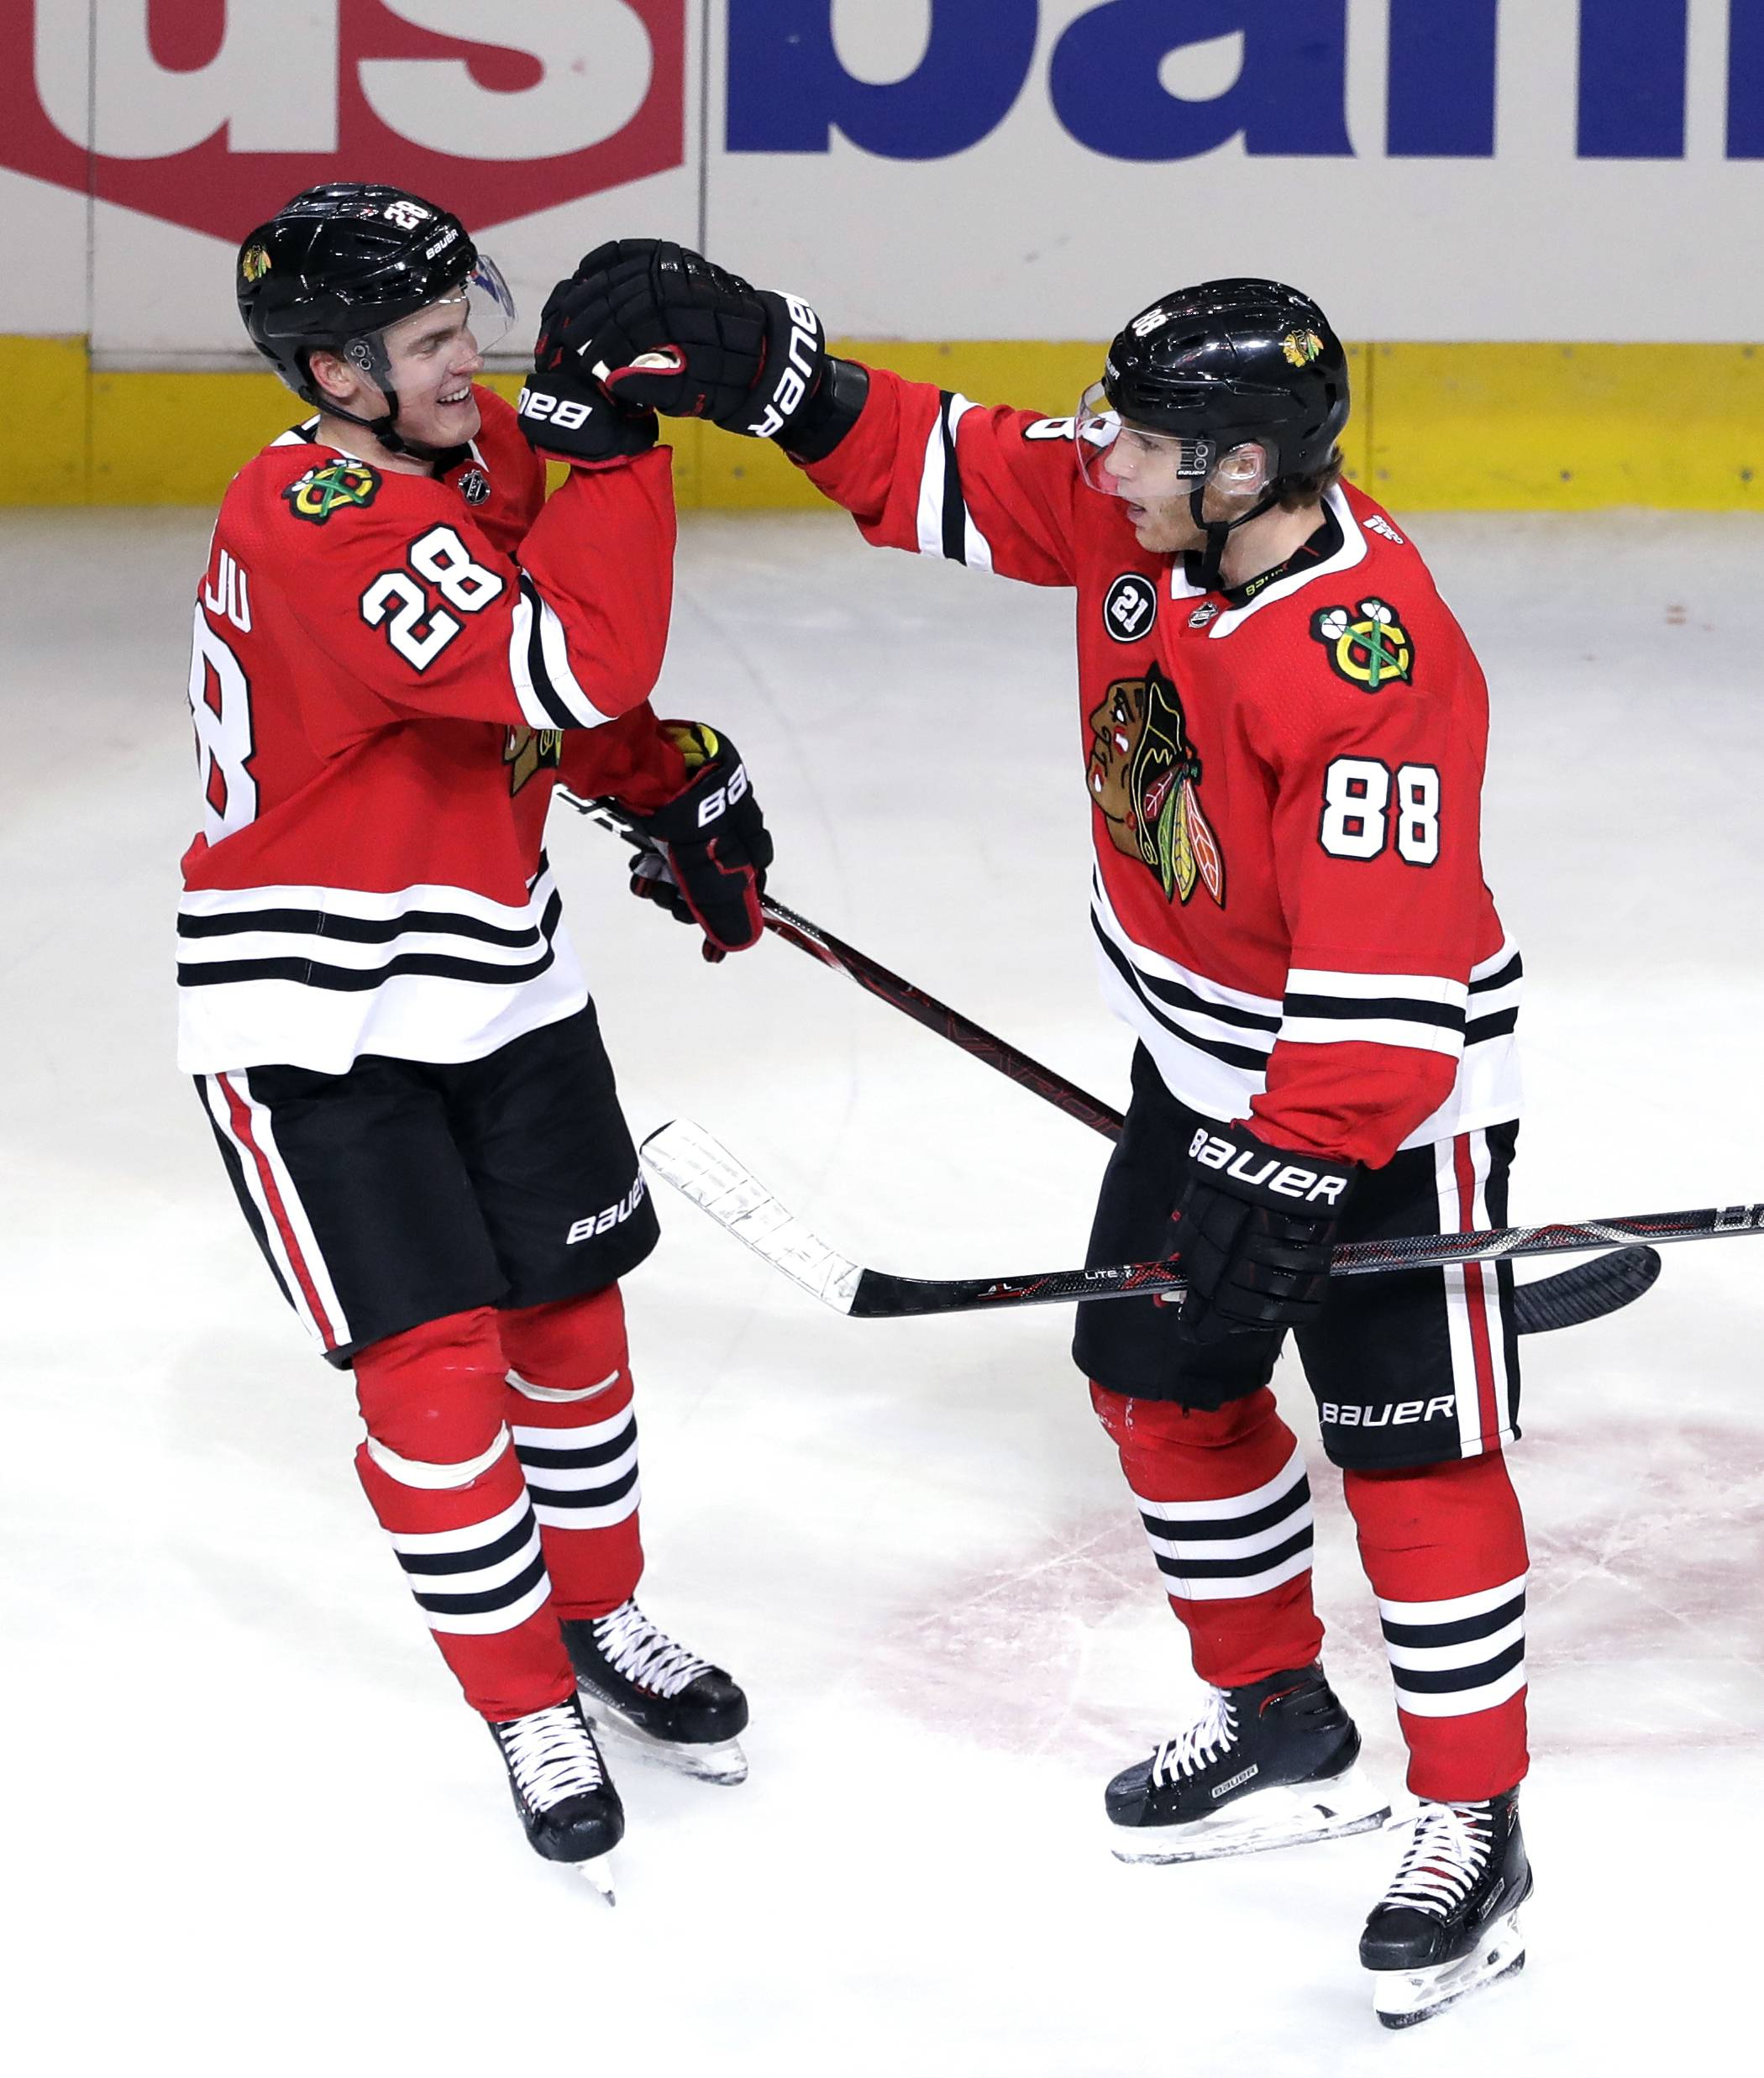 Patrick Kane, right, celebrates with defenseman Henri Jokiharju after scoring a power-play goal Saturday against St. Louis.